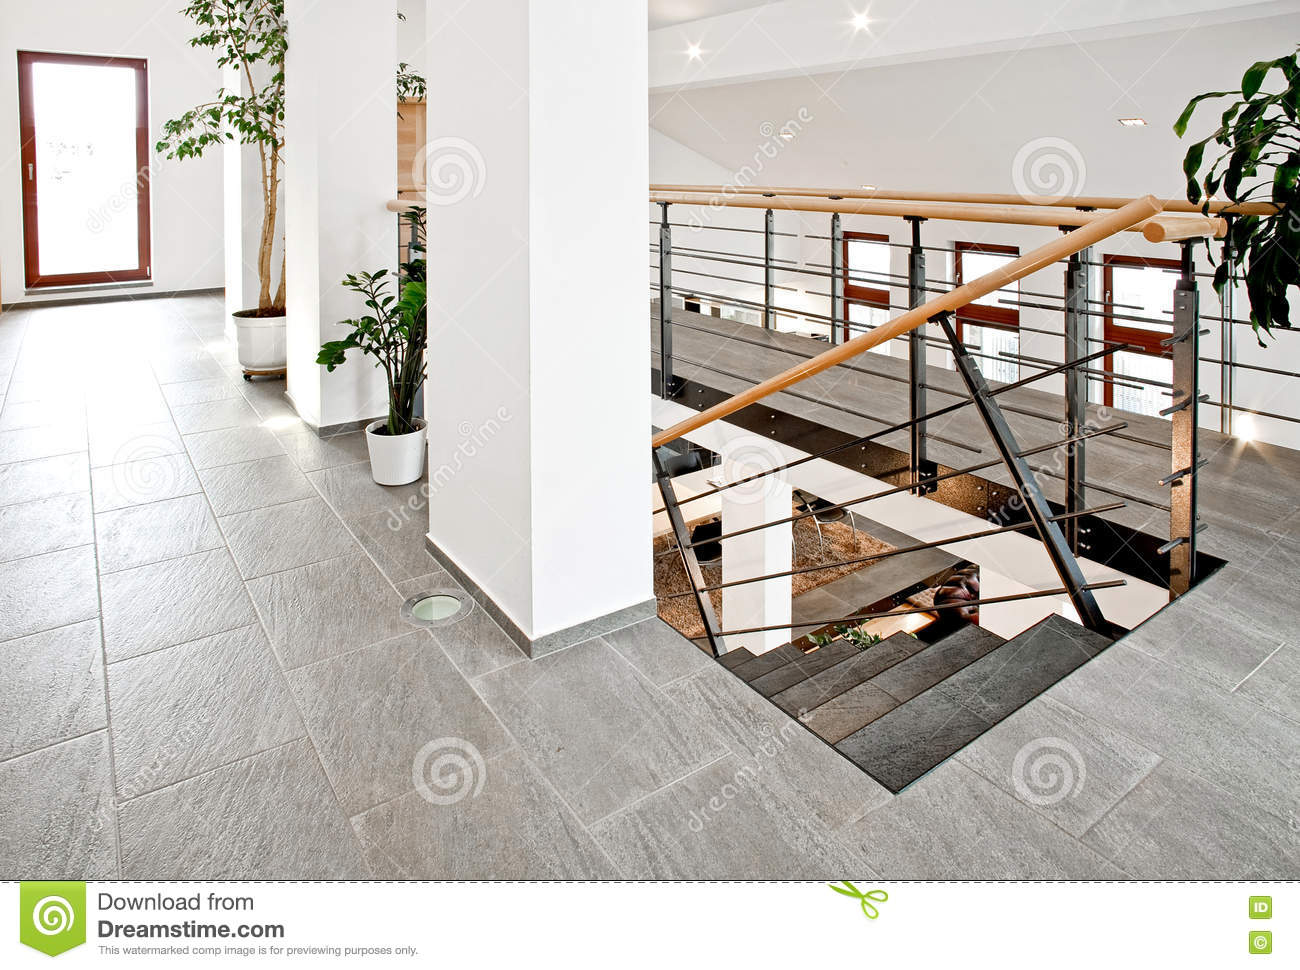 Hall d 39 entr e avec l 39 escalier photo stock image 77287648 for Hall entree avec escalier